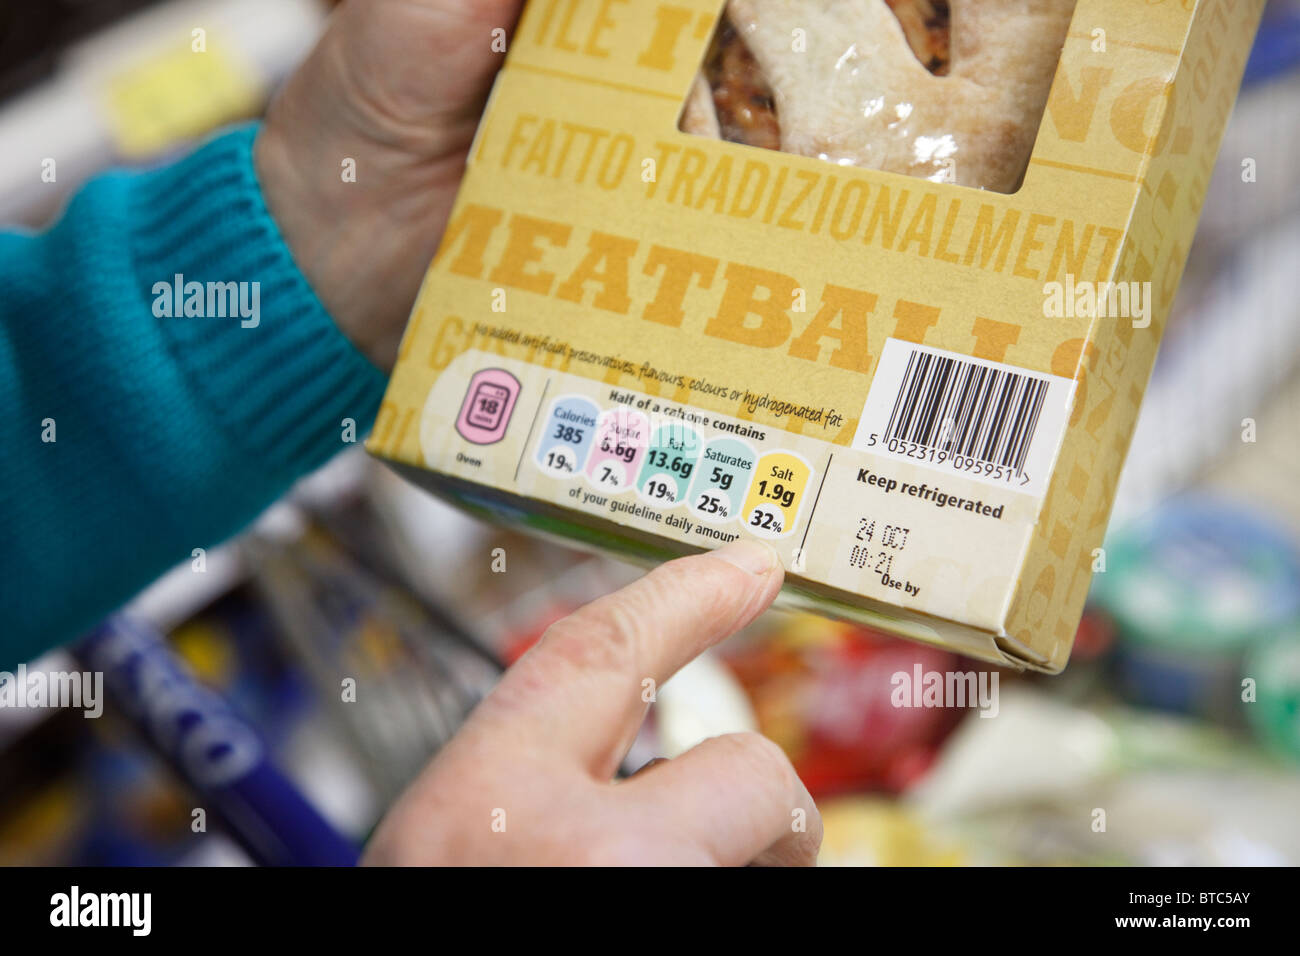 UK, Europe. Senior woman checking the food labels for salt content on a Calzone packet. - Stock Image